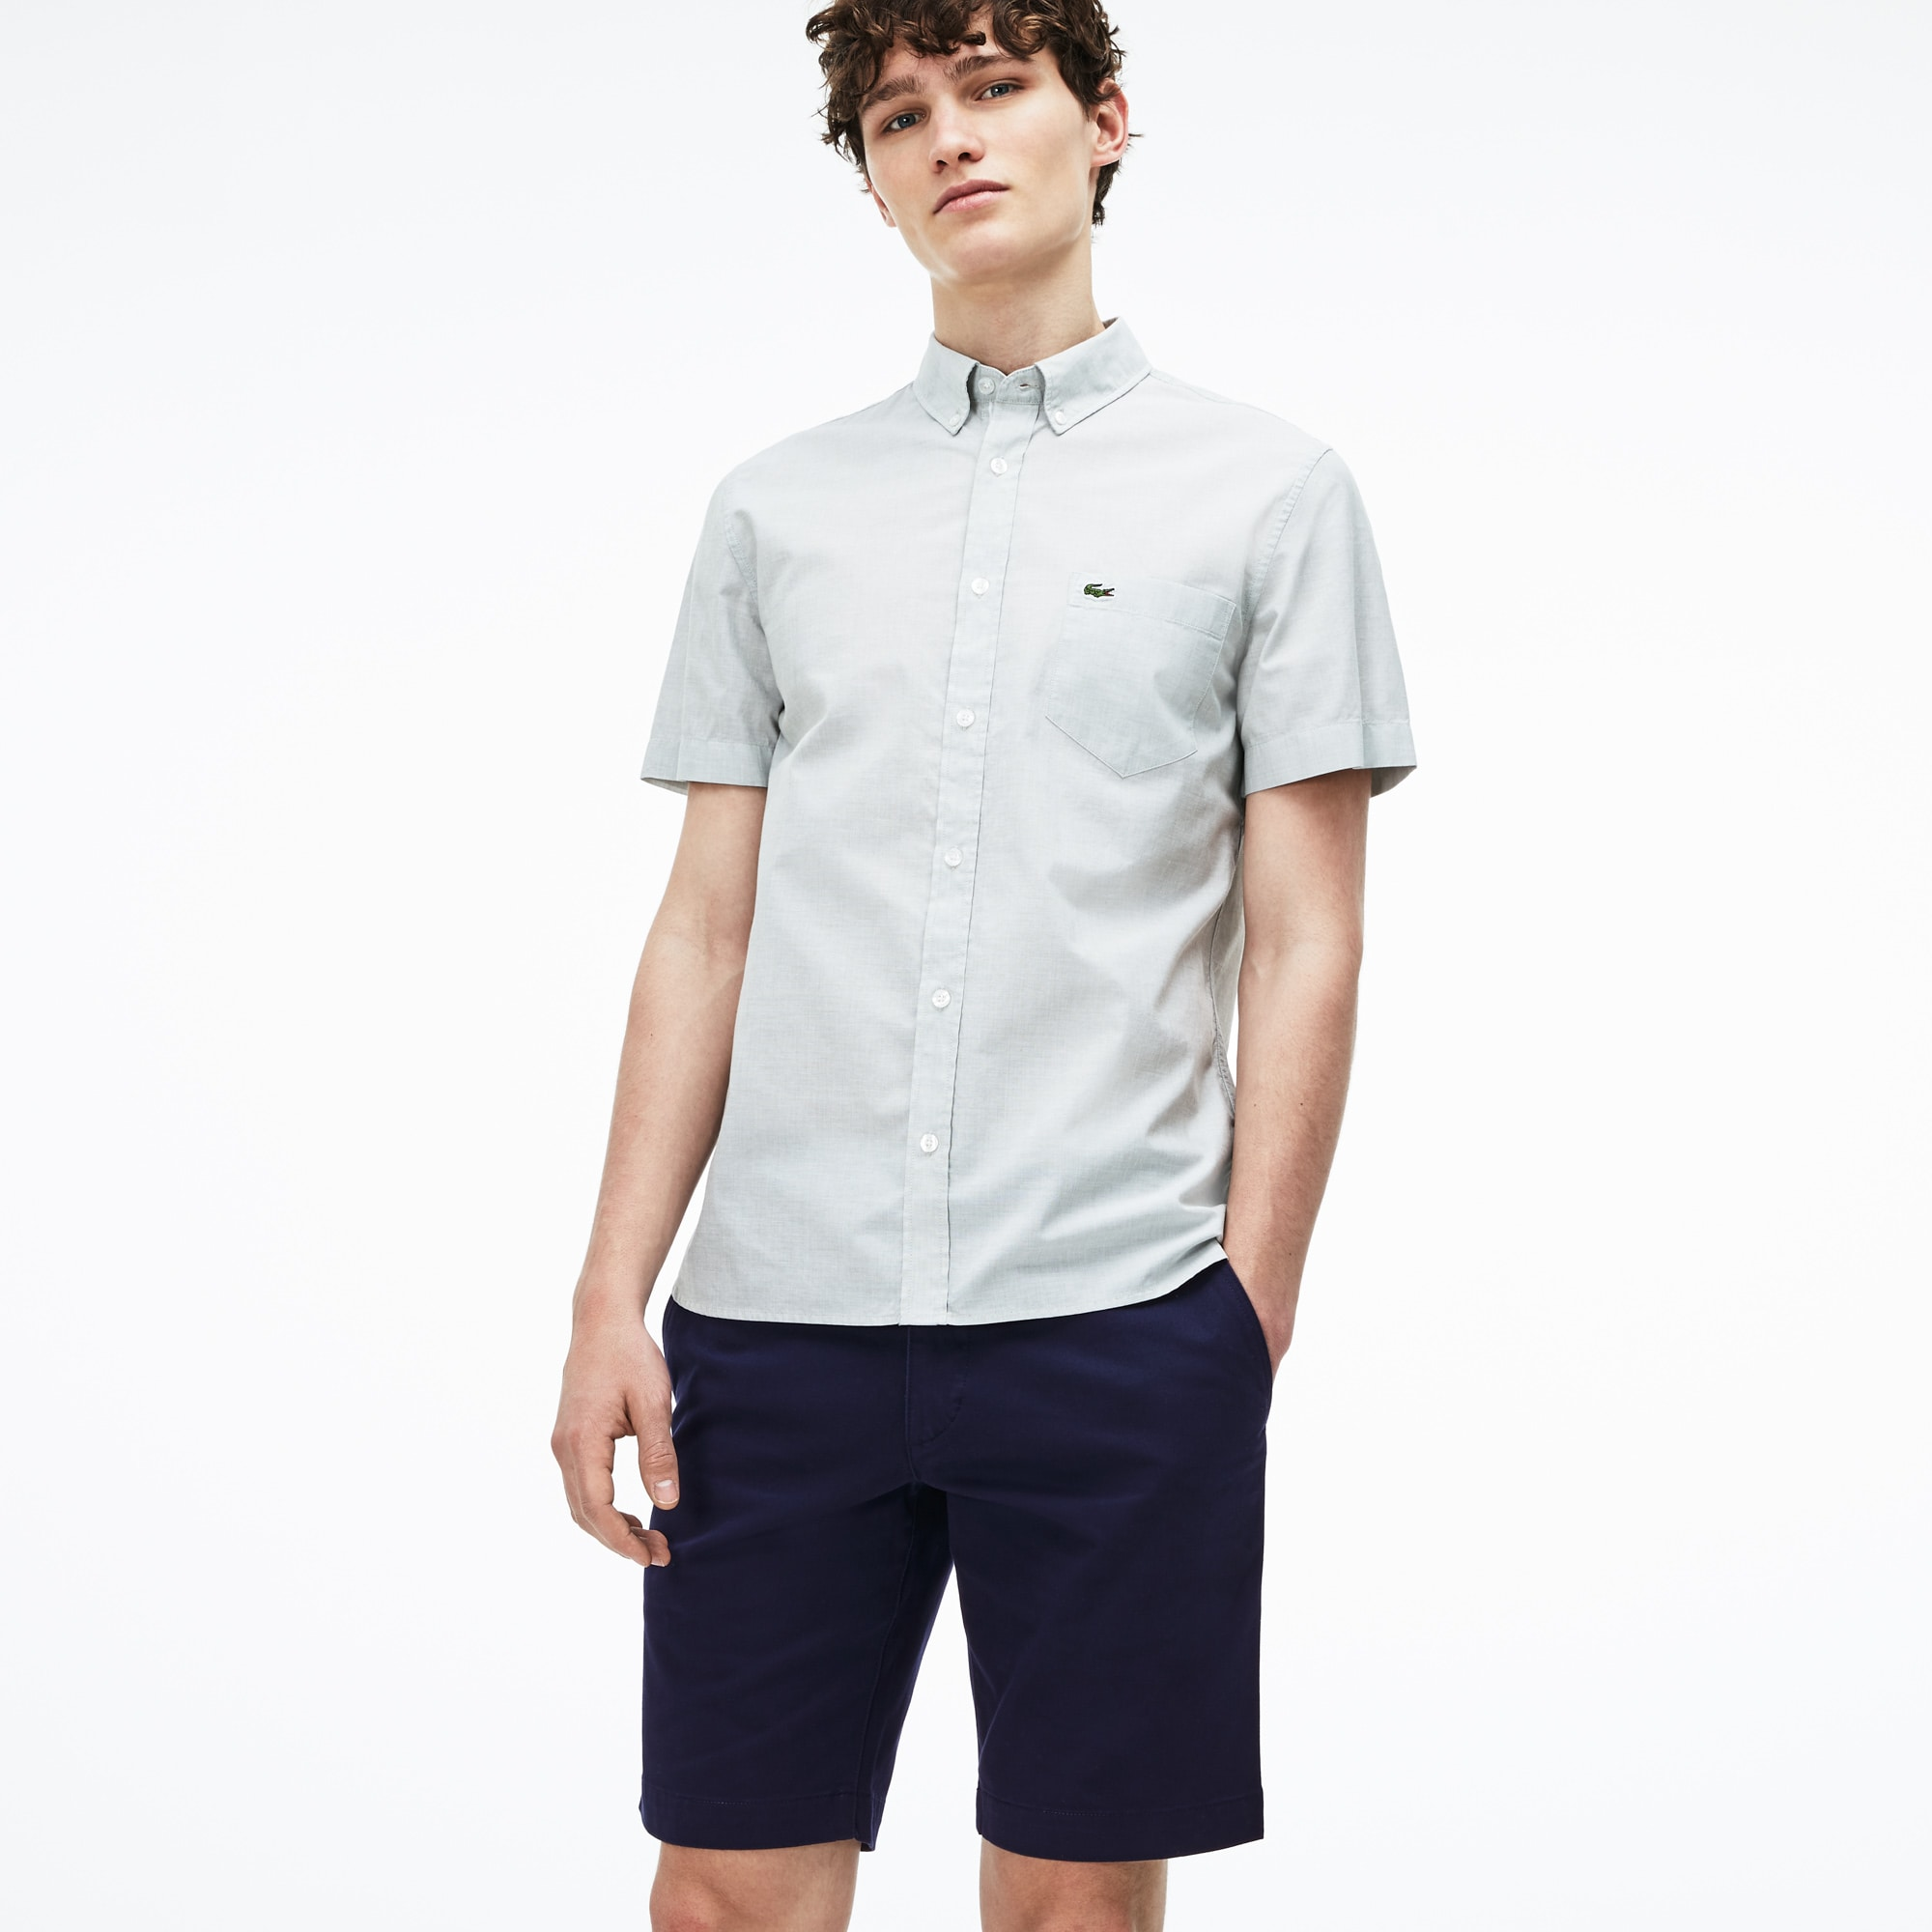 trousers and shorts for men mens fashion lacoste